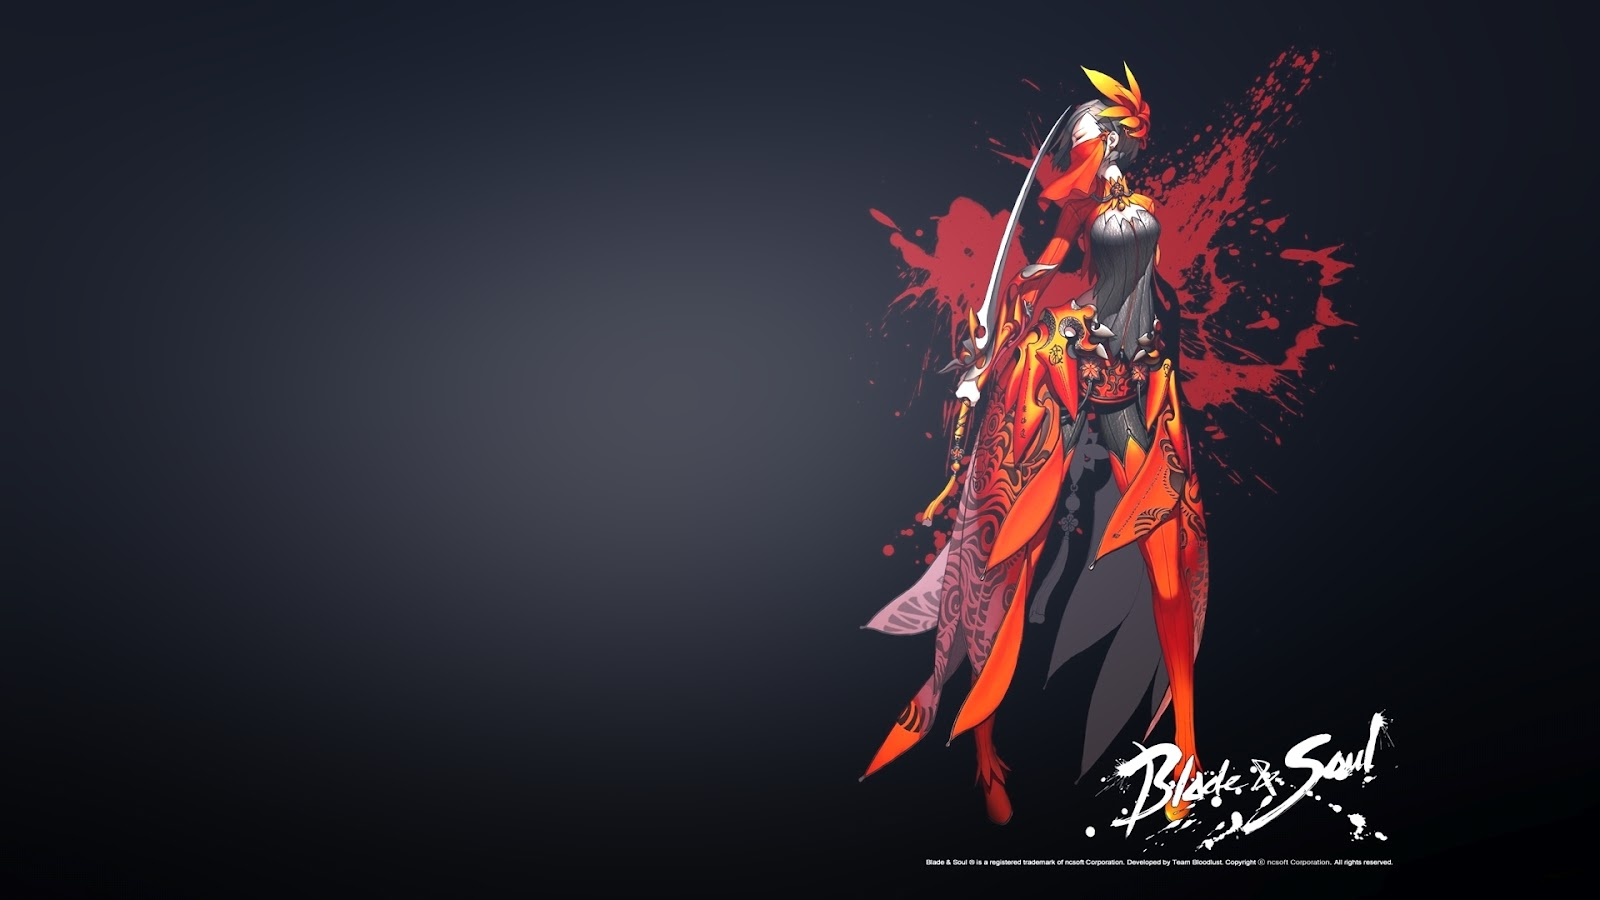 Just Walls Blade and Soul Wallpaper 1600x900